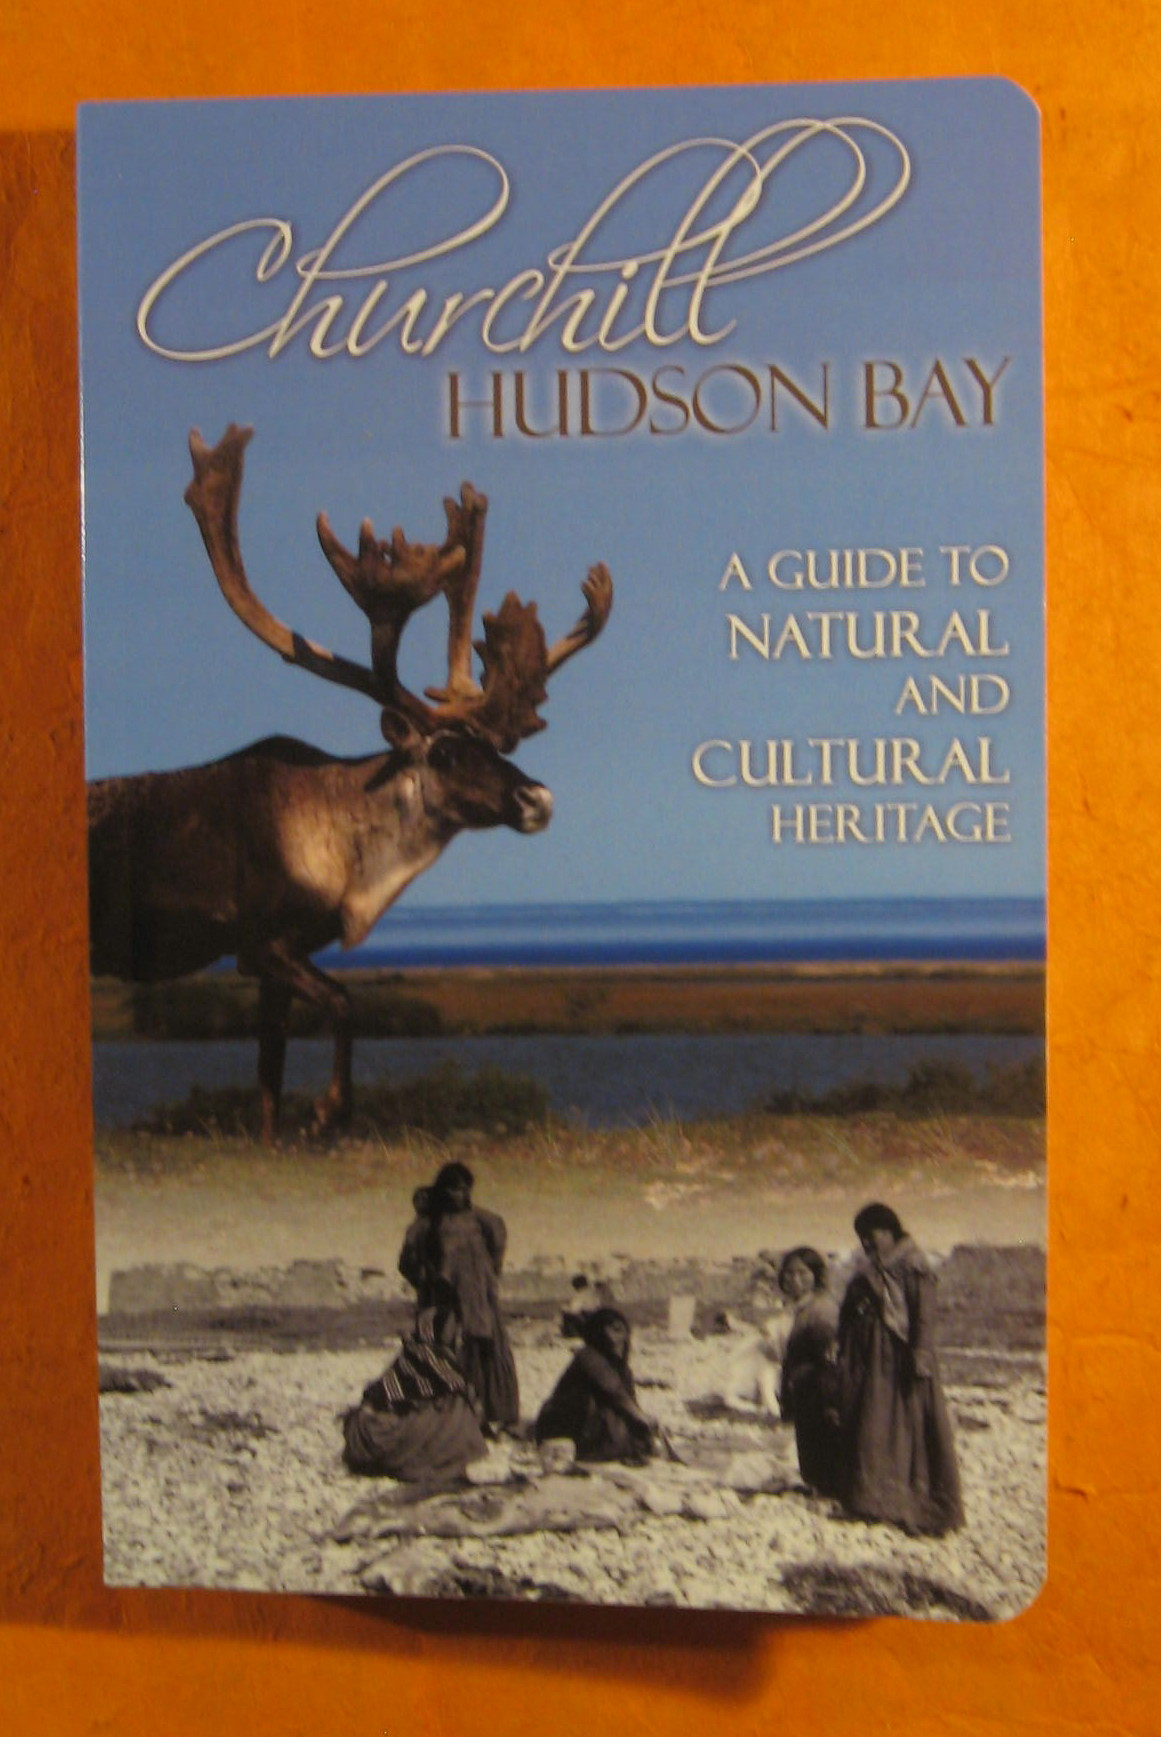 Image for Churchill Hudson Bay: A Guide to Natural and Cultural Heritage